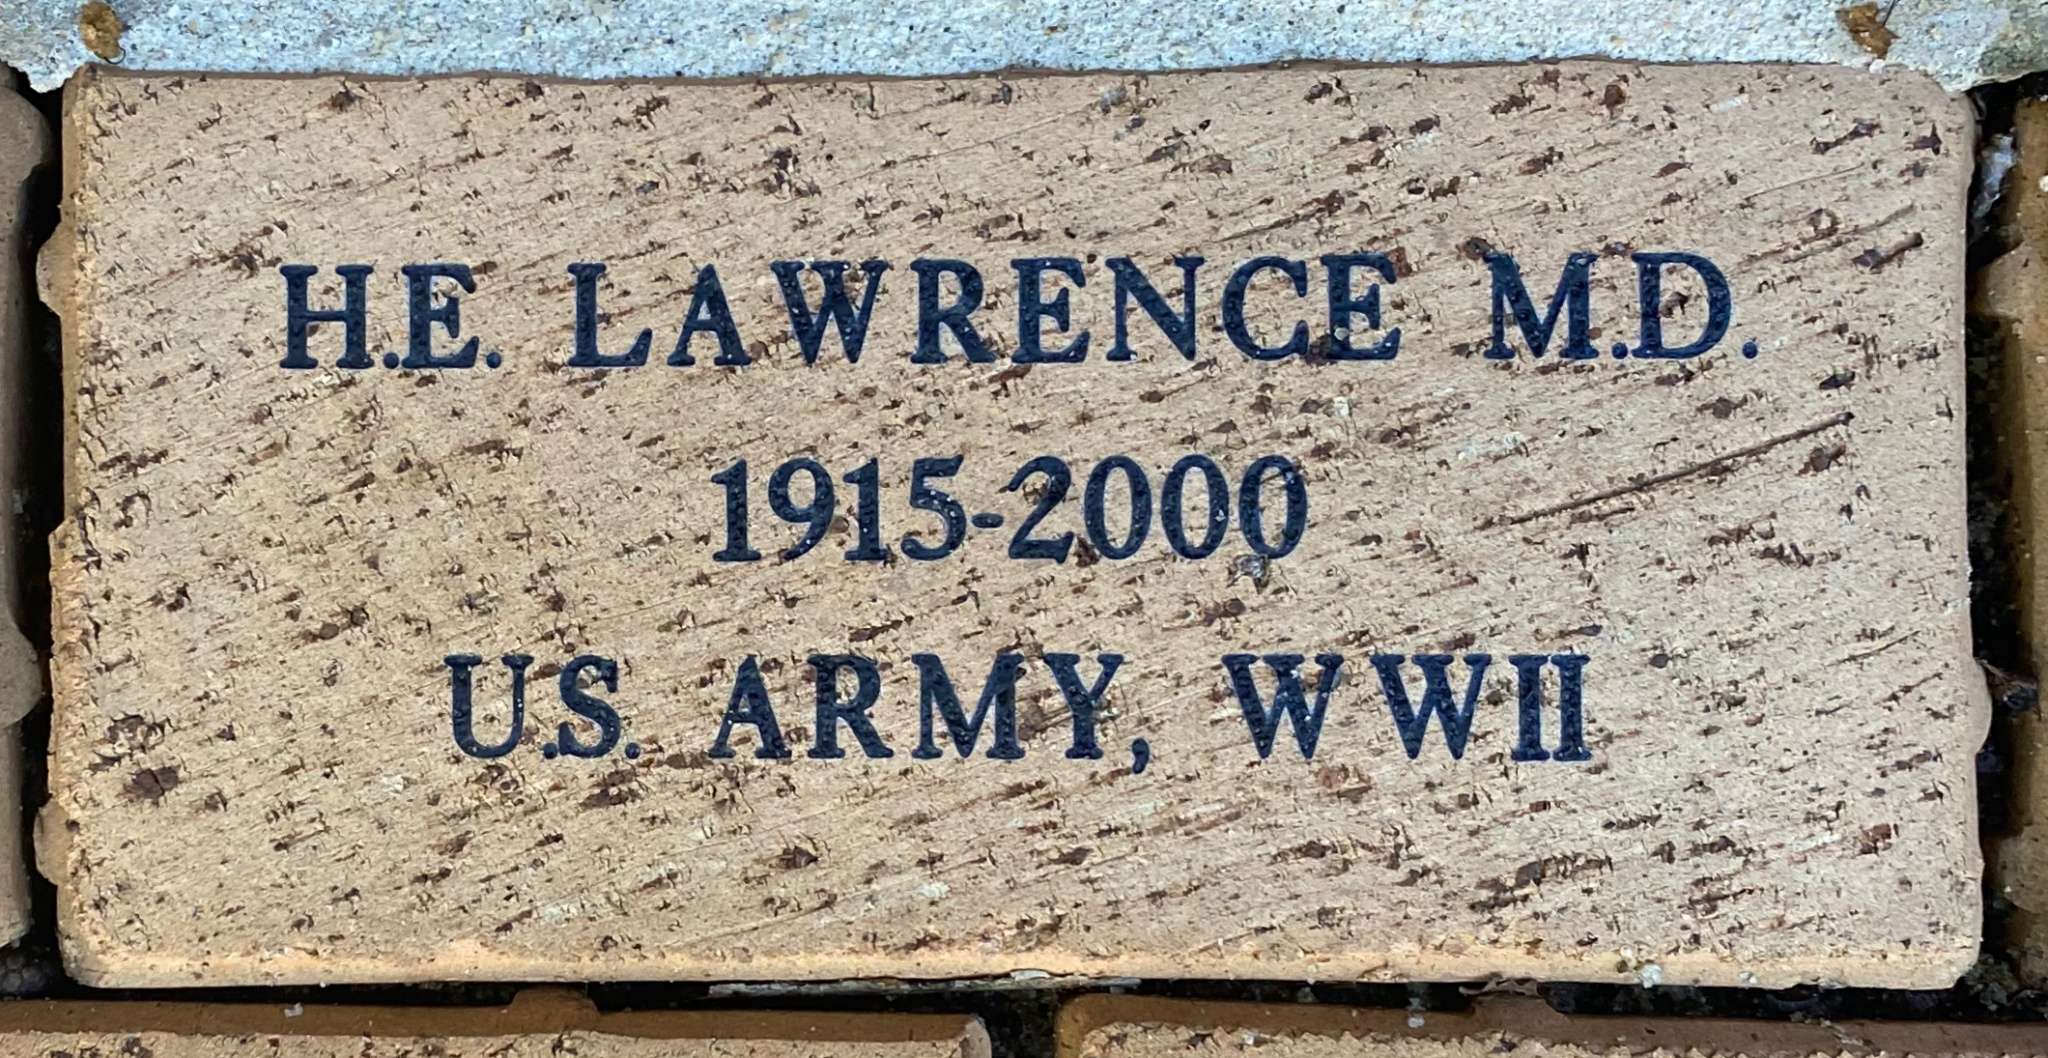 H.E. LAWRENCE M.D. 1915-2000 U.S. ARMY, WWII